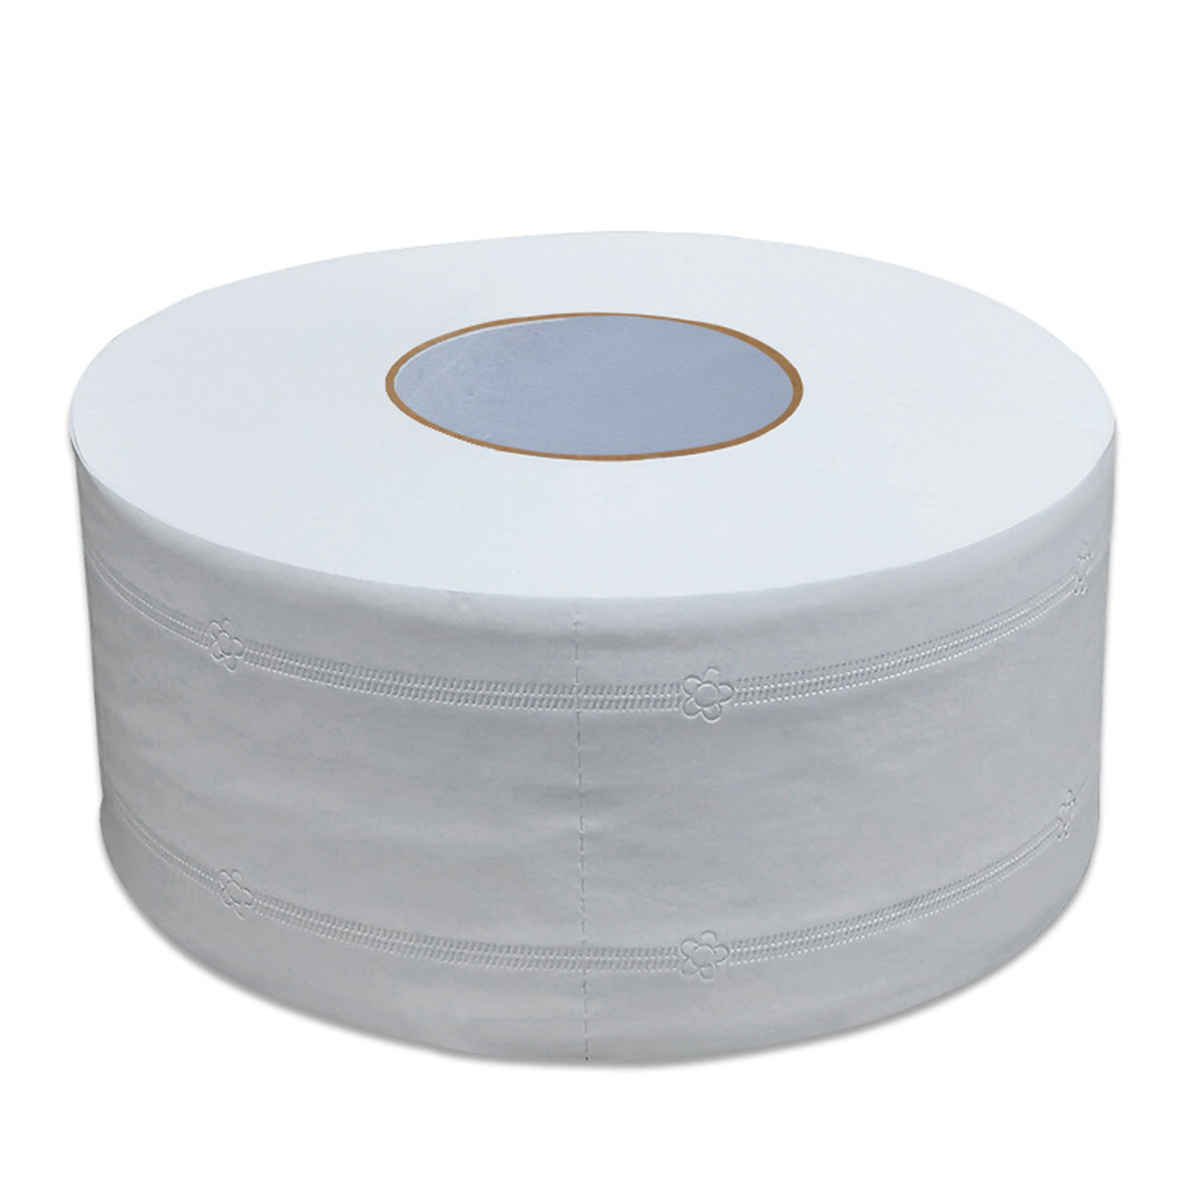 Jumbo Roll Toilet Paper For Home 4-layer Soft Native Wood Pulp Rolling Paper 1 Roll Paper Primary Wood Pulp